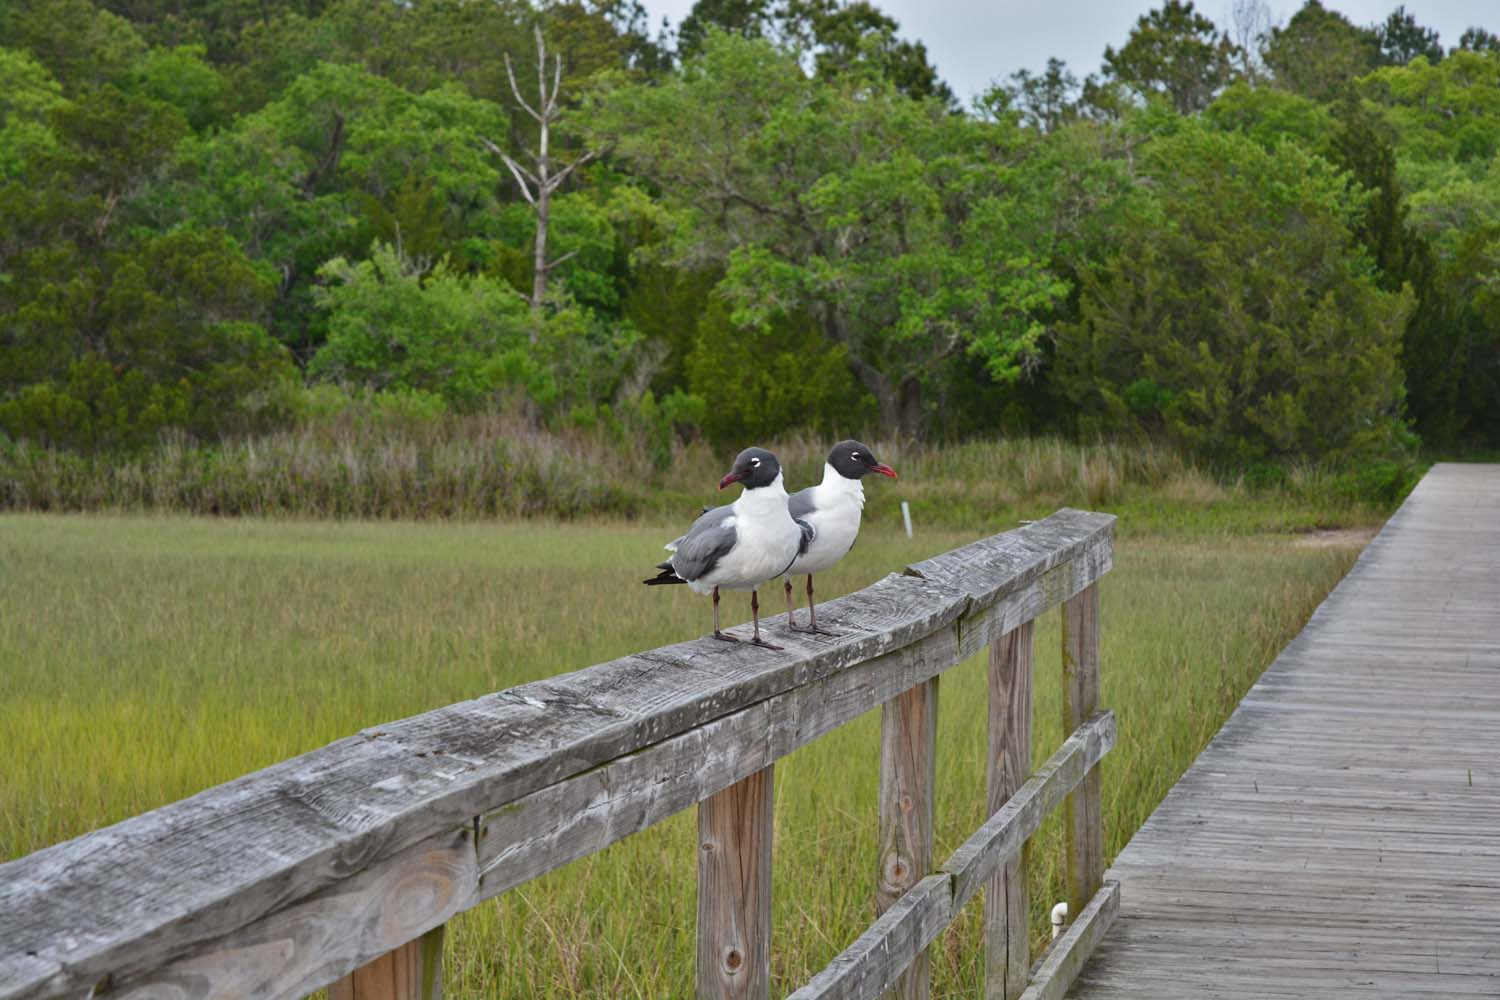 St James Island County Park residents